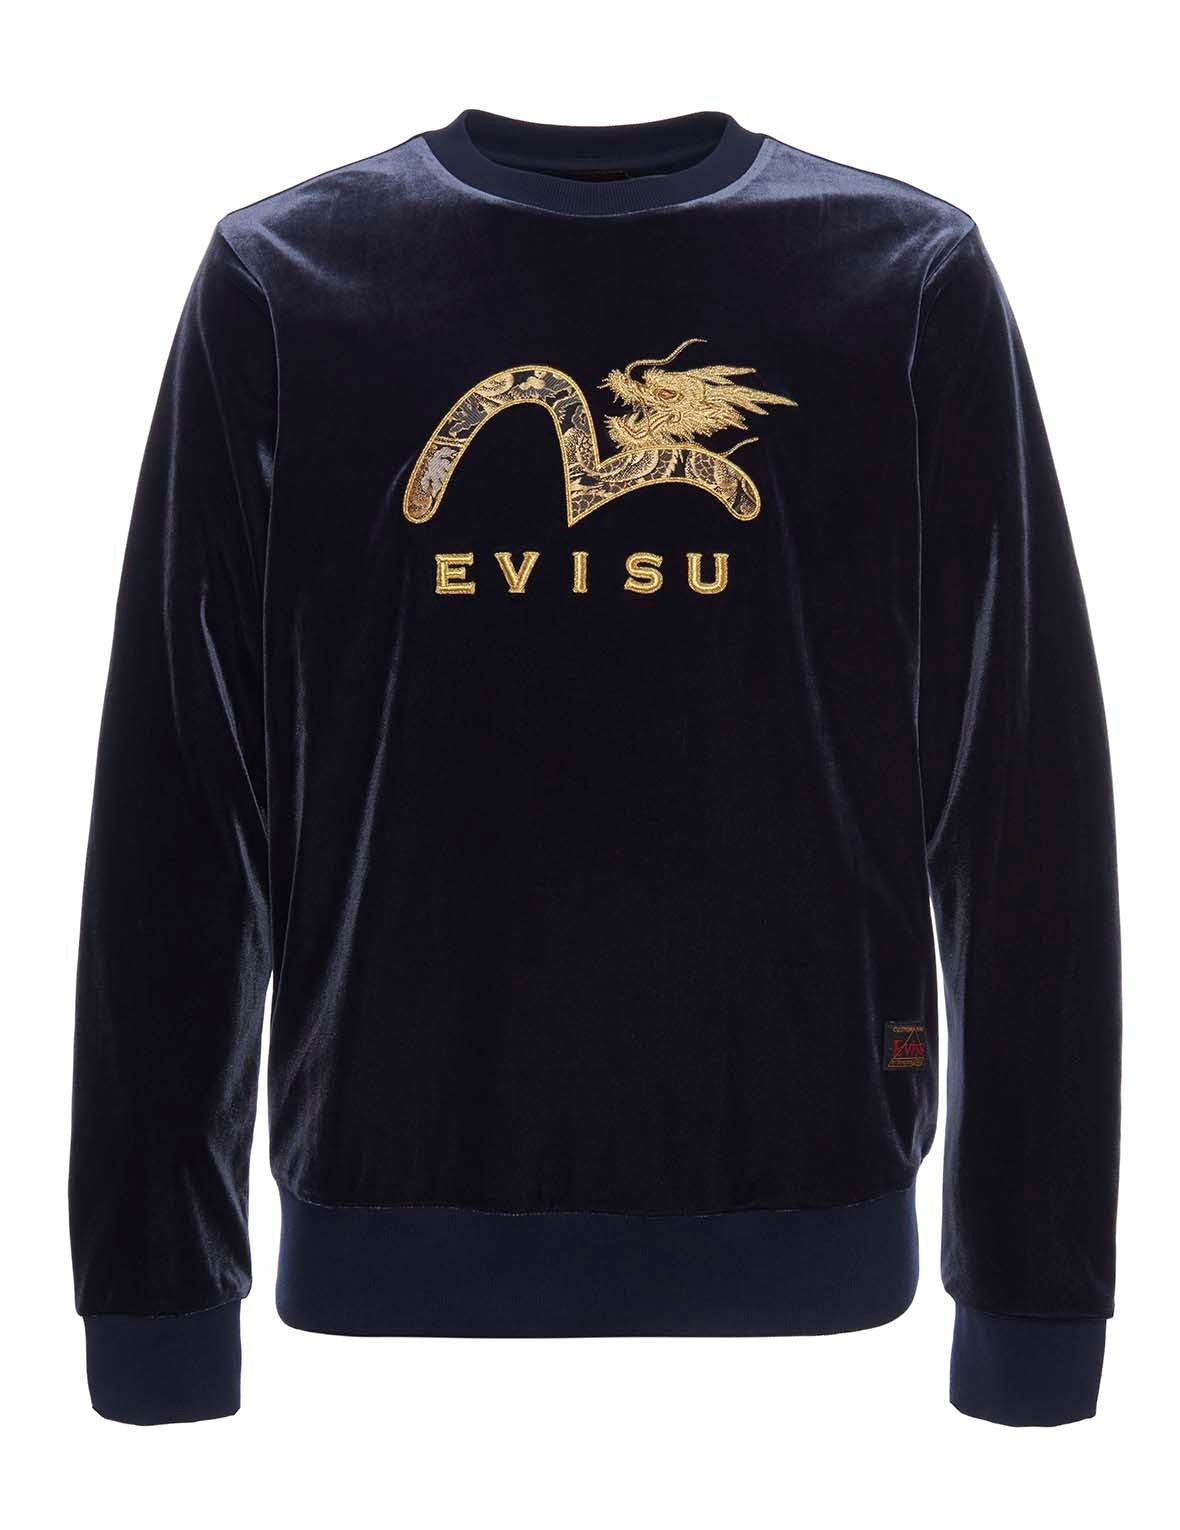 EVISU Brocade Appliqued Velour Sweatshirt With Dragon Embroidery